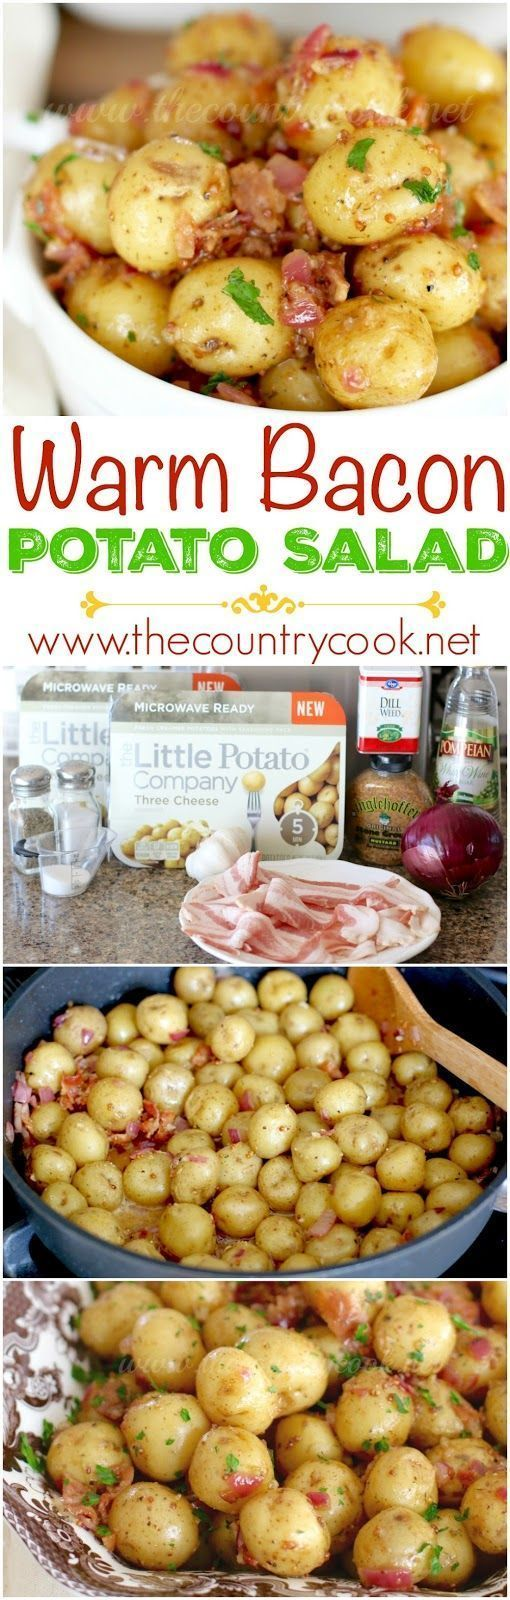 Warm Bacon Potato Salad recipe from The Country Cook. It's similar to a German Potato Salad. Perfect for a picnic or BBQ since I don't have to worry about any mayo sitting out. I love the dressing on this! #potato #recipes #easy #sidedish